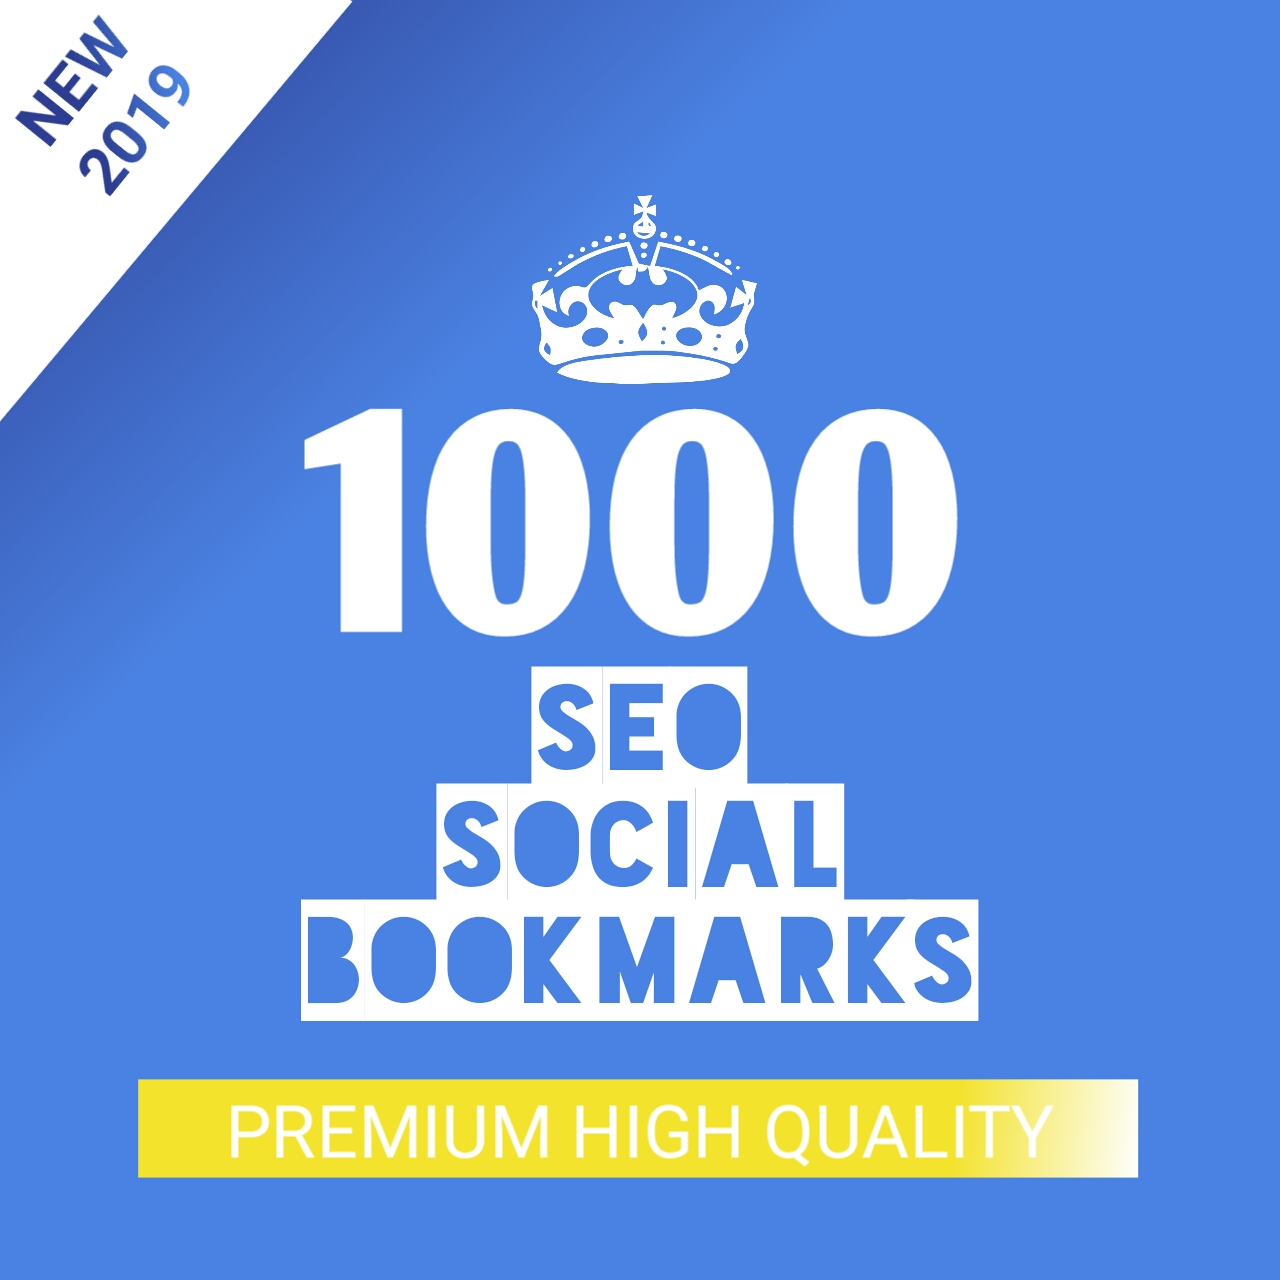 PREMIUM 1000 SEO Social Bookmarks to improve your website ranking